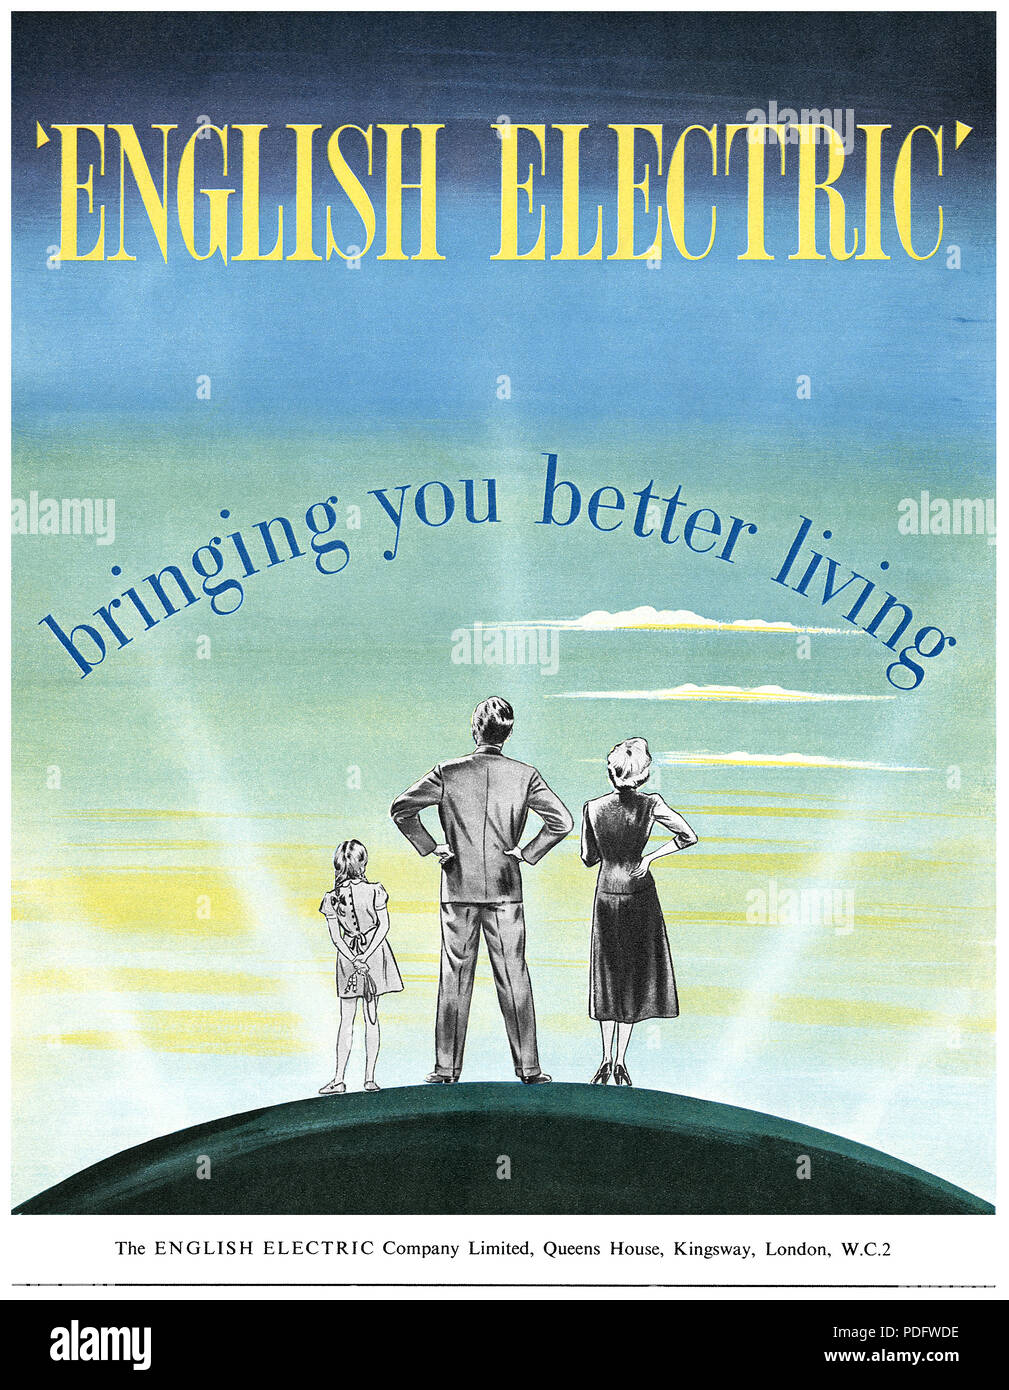 1951 British advertisement for The English Electric Company Limited. - Stock Image